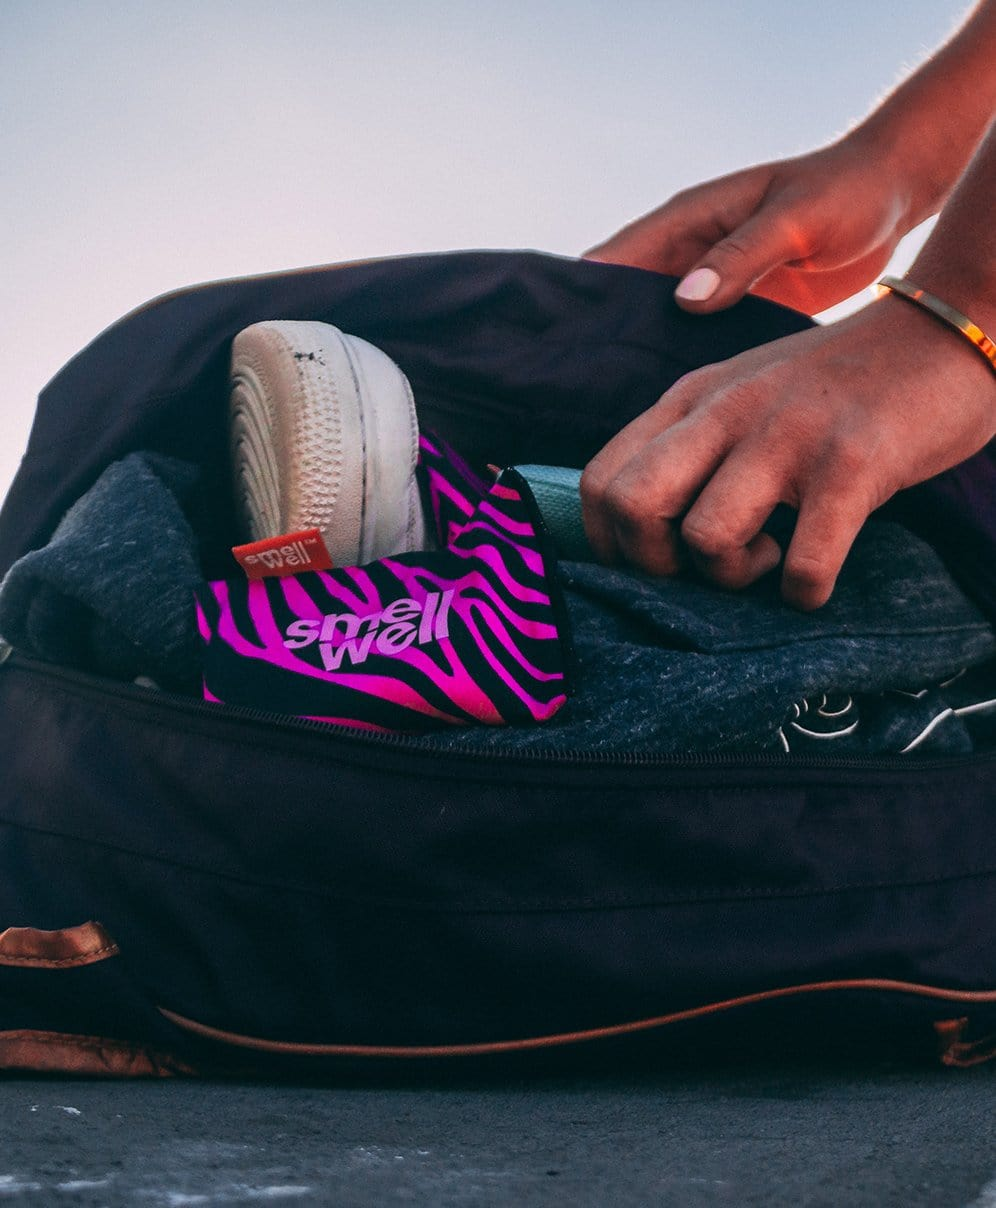 SmellWell Active - Pink Zebra freshener inserts lying in a bag with dirty gym clothes